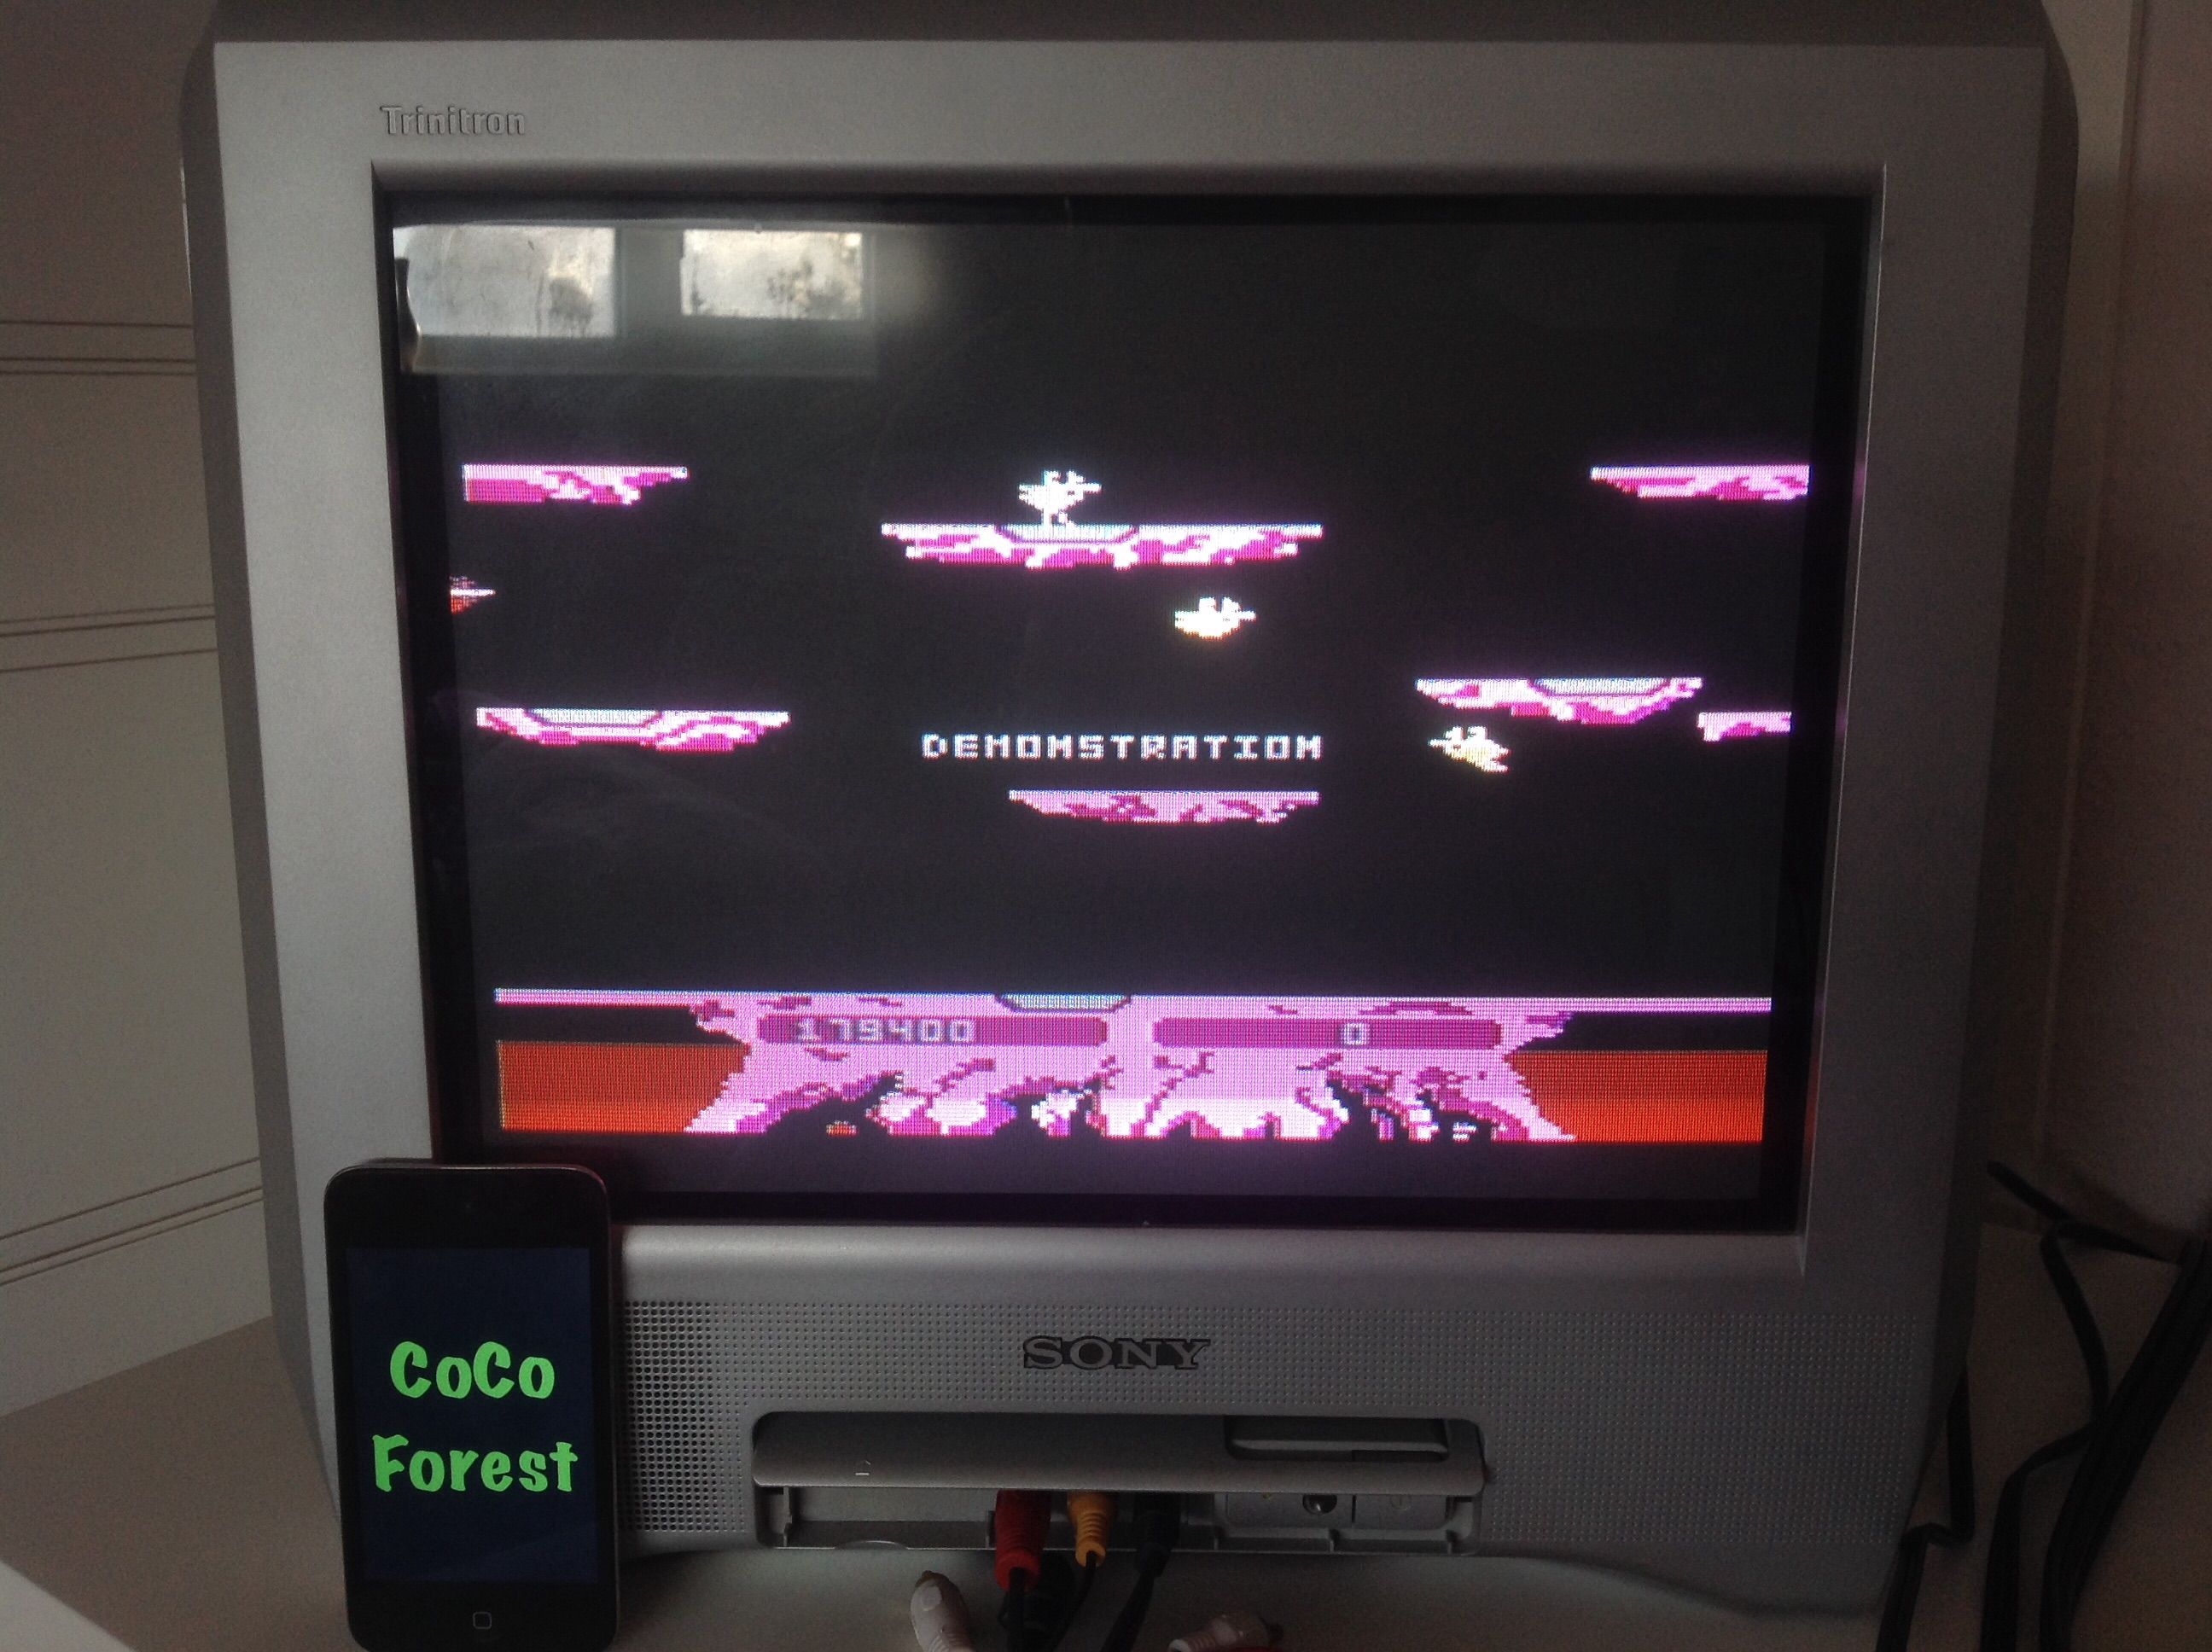 CoCoForest: Joust: Advanced (Atari 5200) 179,400 points on 2014-11-05 03:47:17